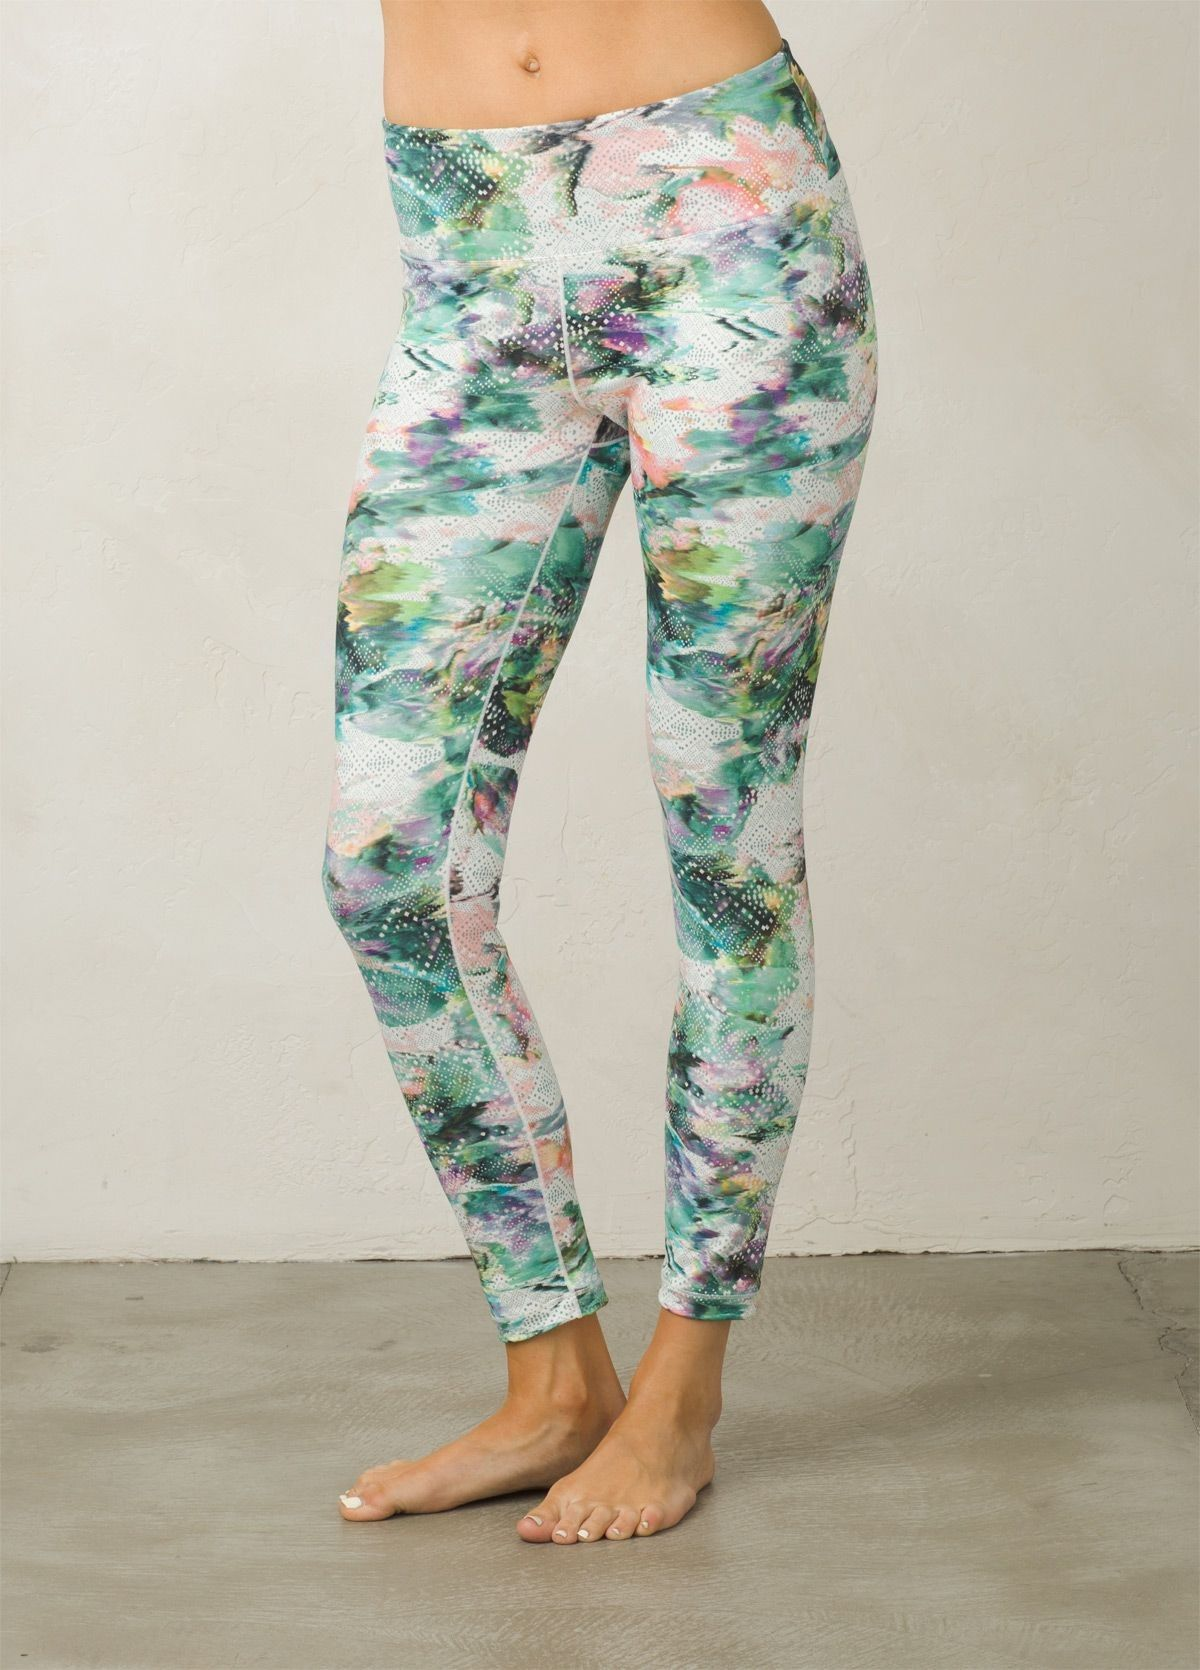 2fac15fd4bdb6 I love the prAna Pillar Printed Legging! Check it out and more at www.prAna .com